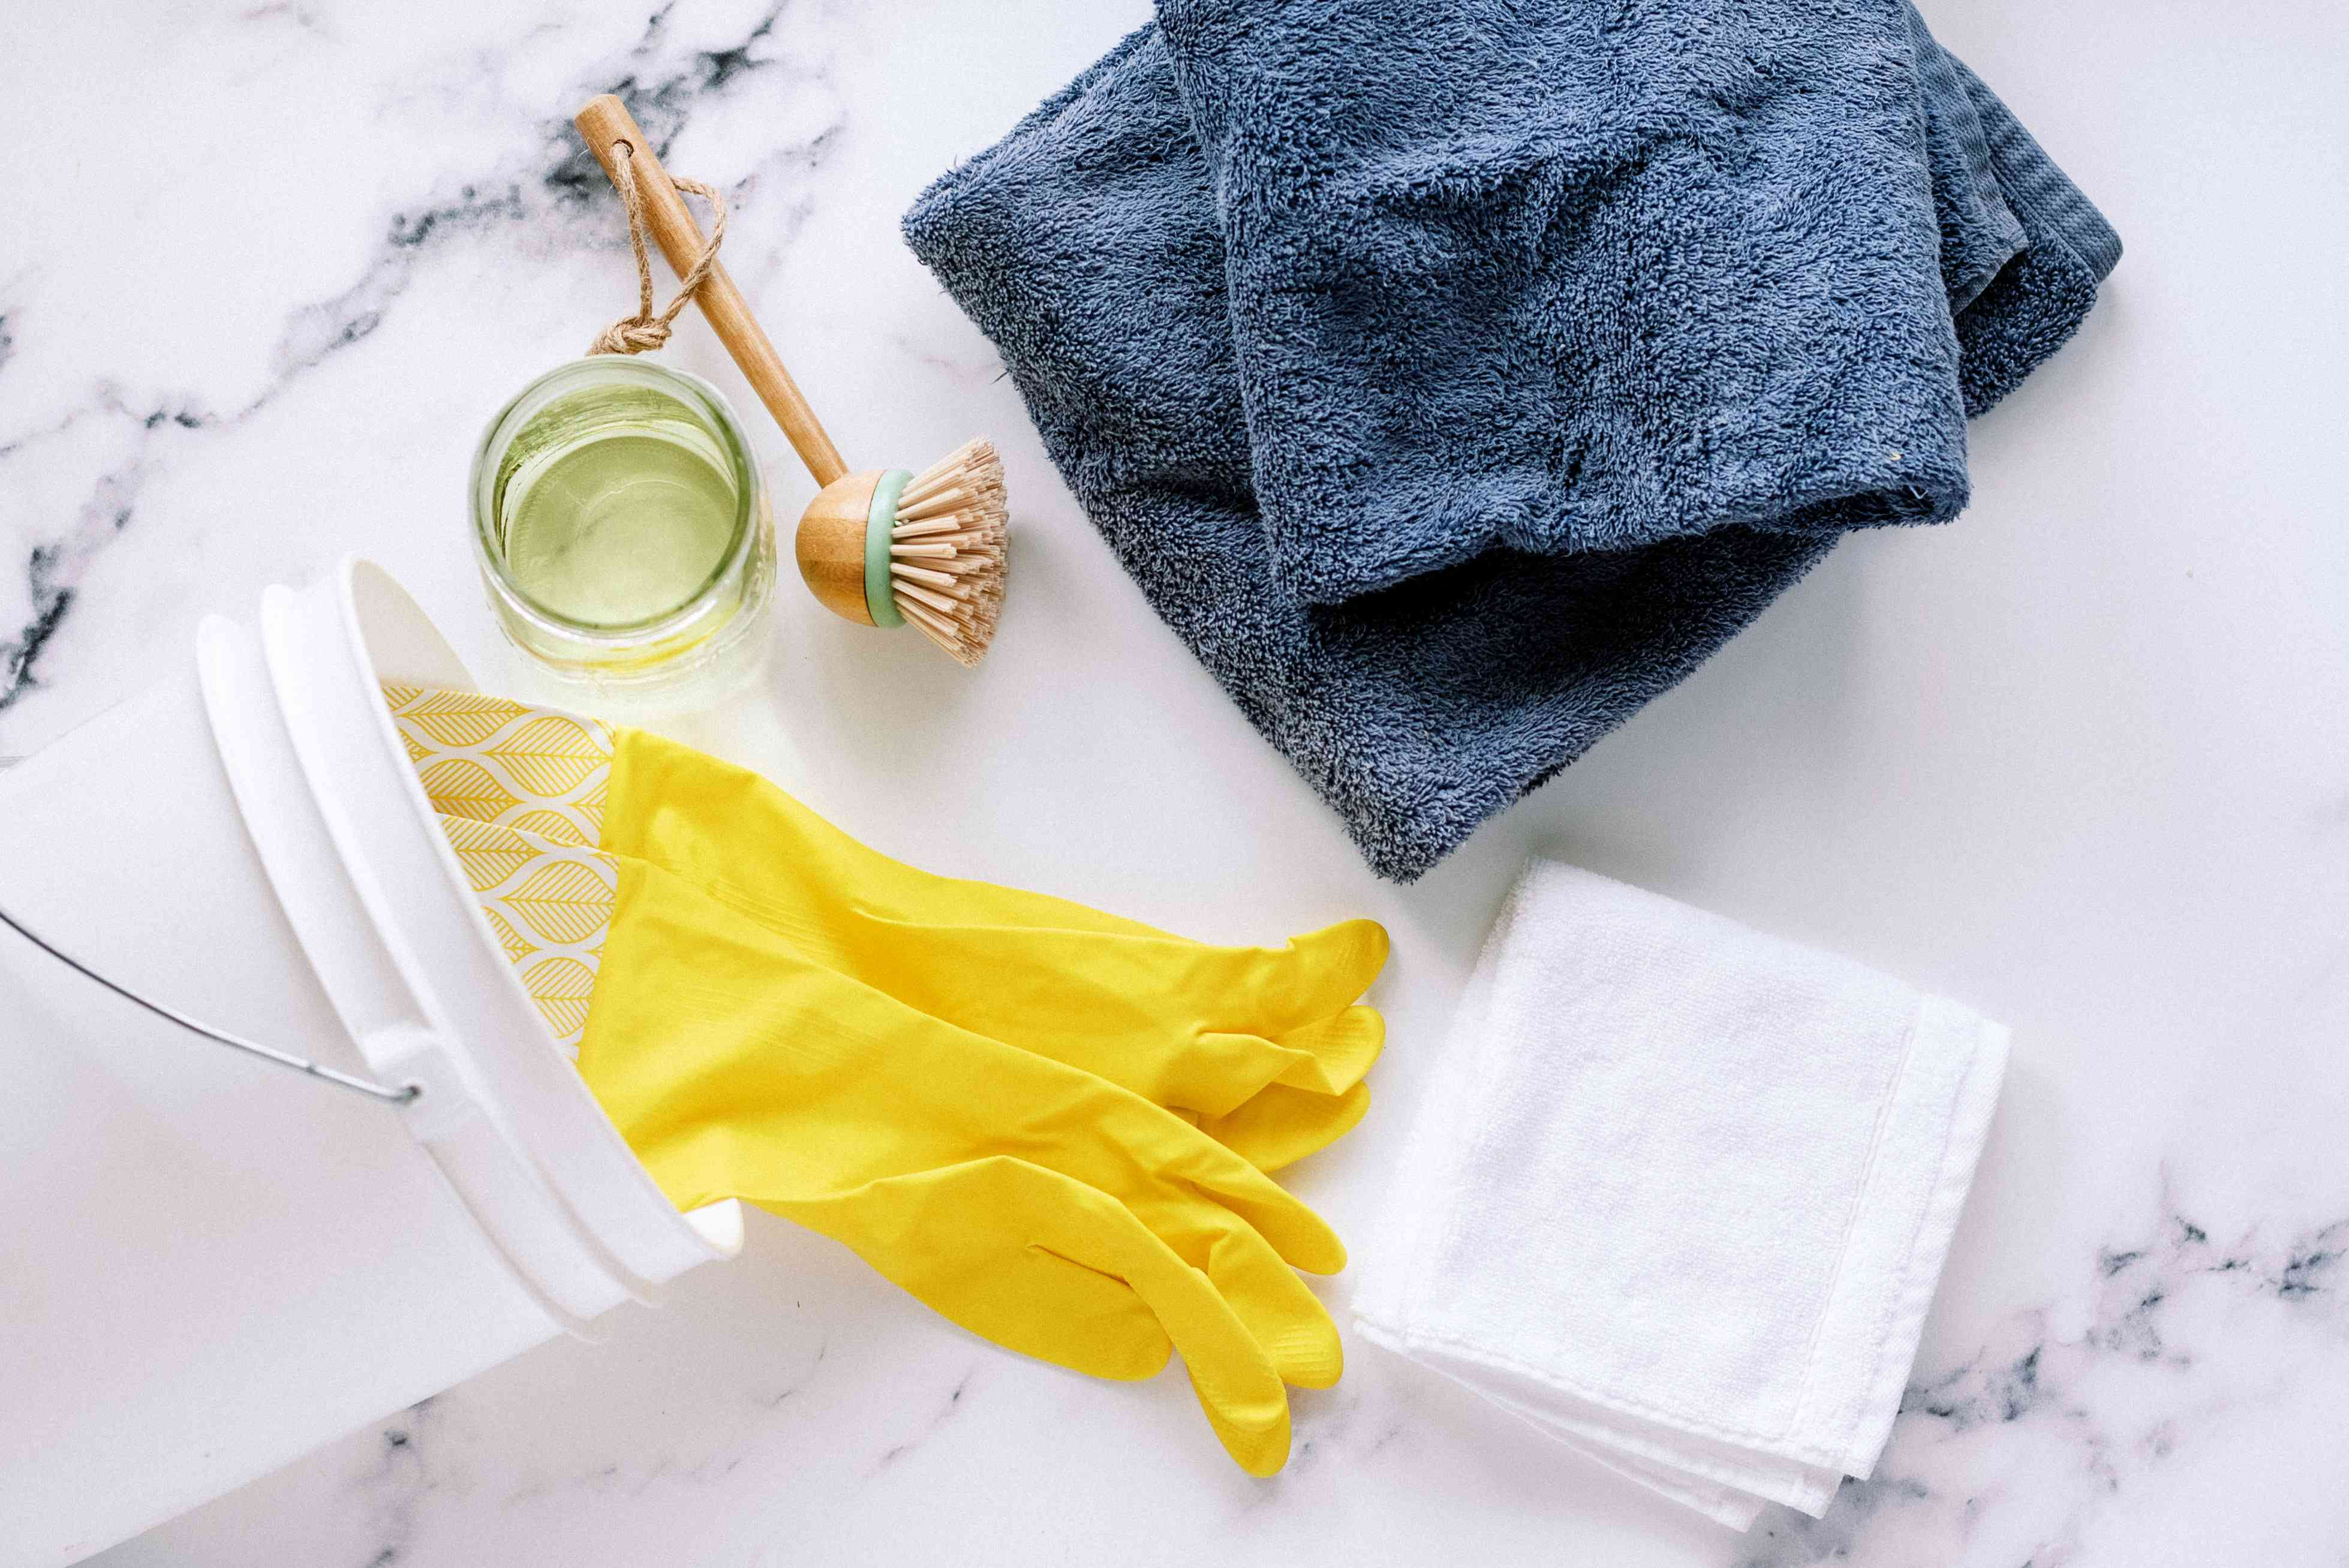 materials for disinfecting a washer and dryer